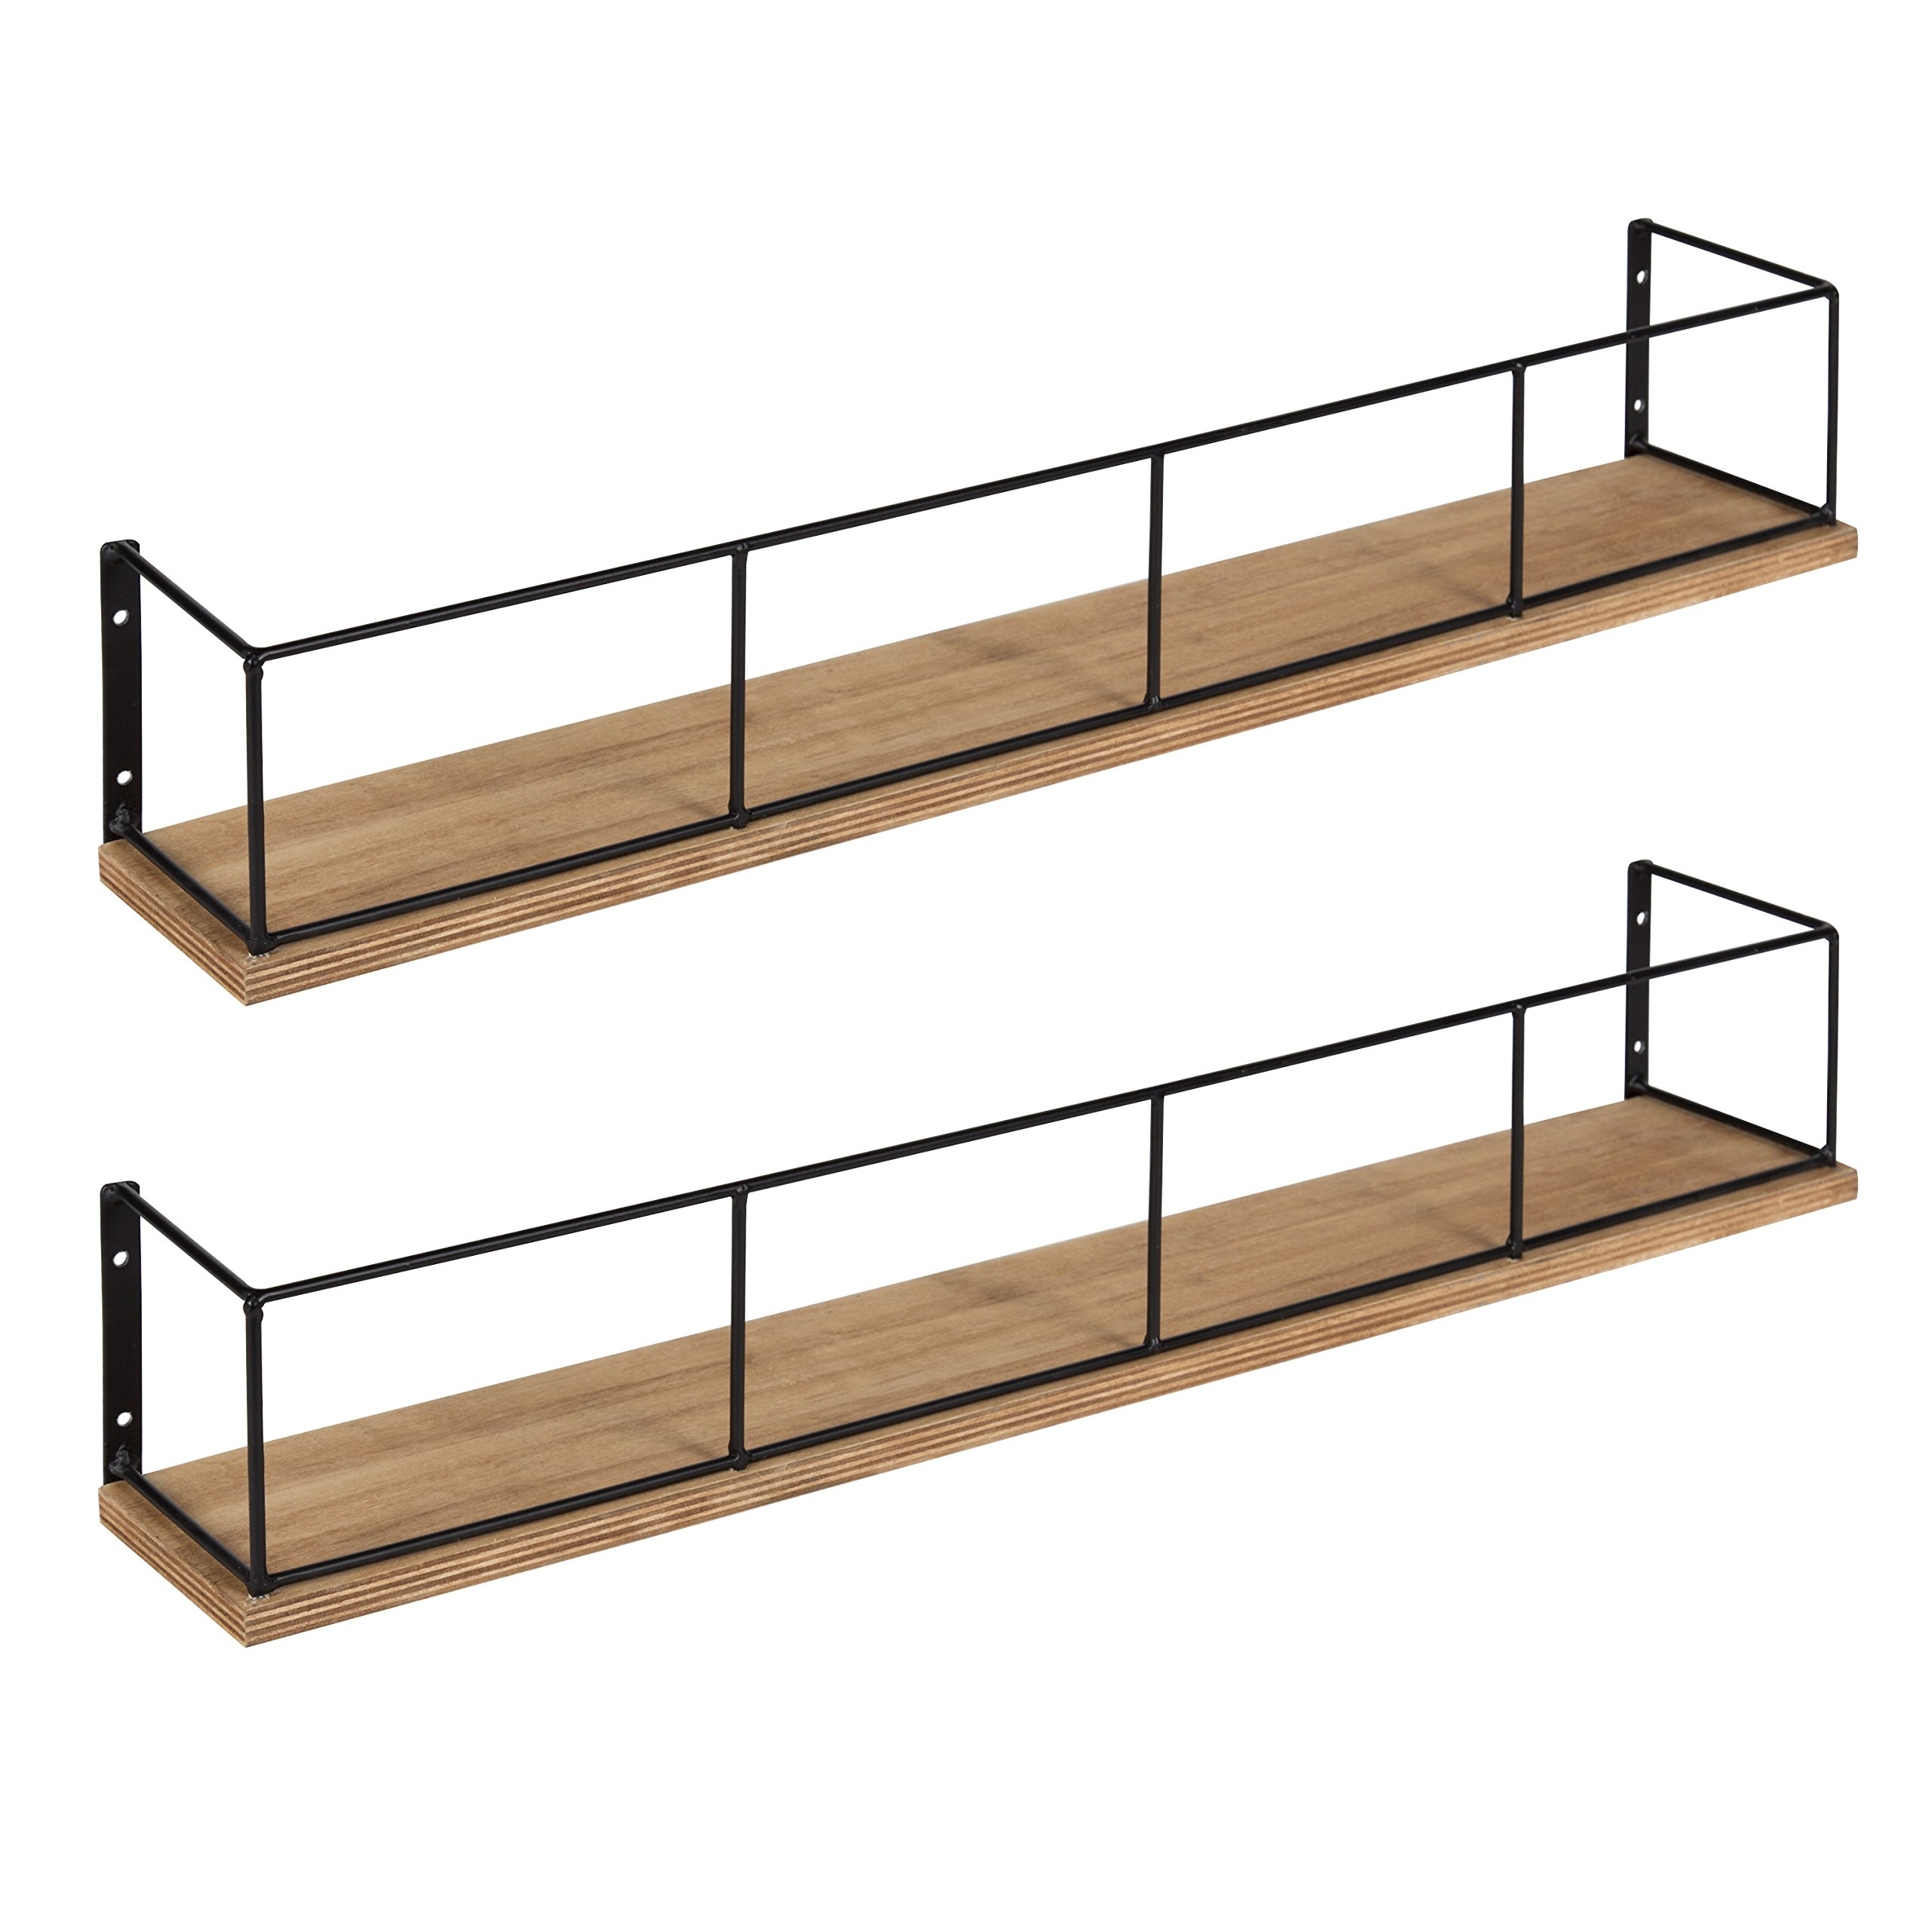 Kate and Laurel Benbrook 2-Pack Wood and Metal Floating Wall Shelves, 24'', Rustic Brown and Black